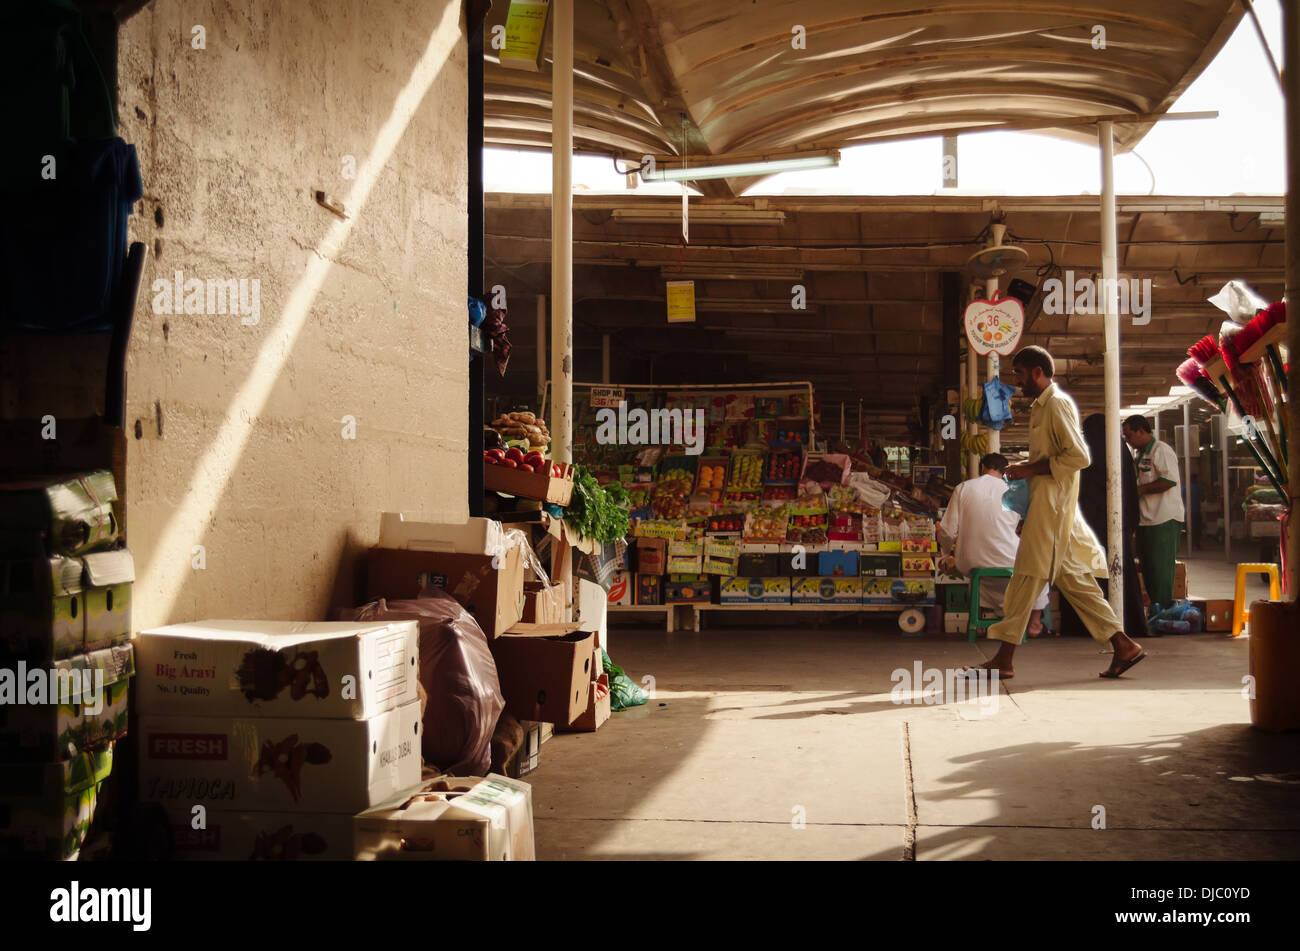 A male Arab walks along one of the corridors at Deira's Fruit and Vegetable Market. Dubai, UAE. - Stock Image